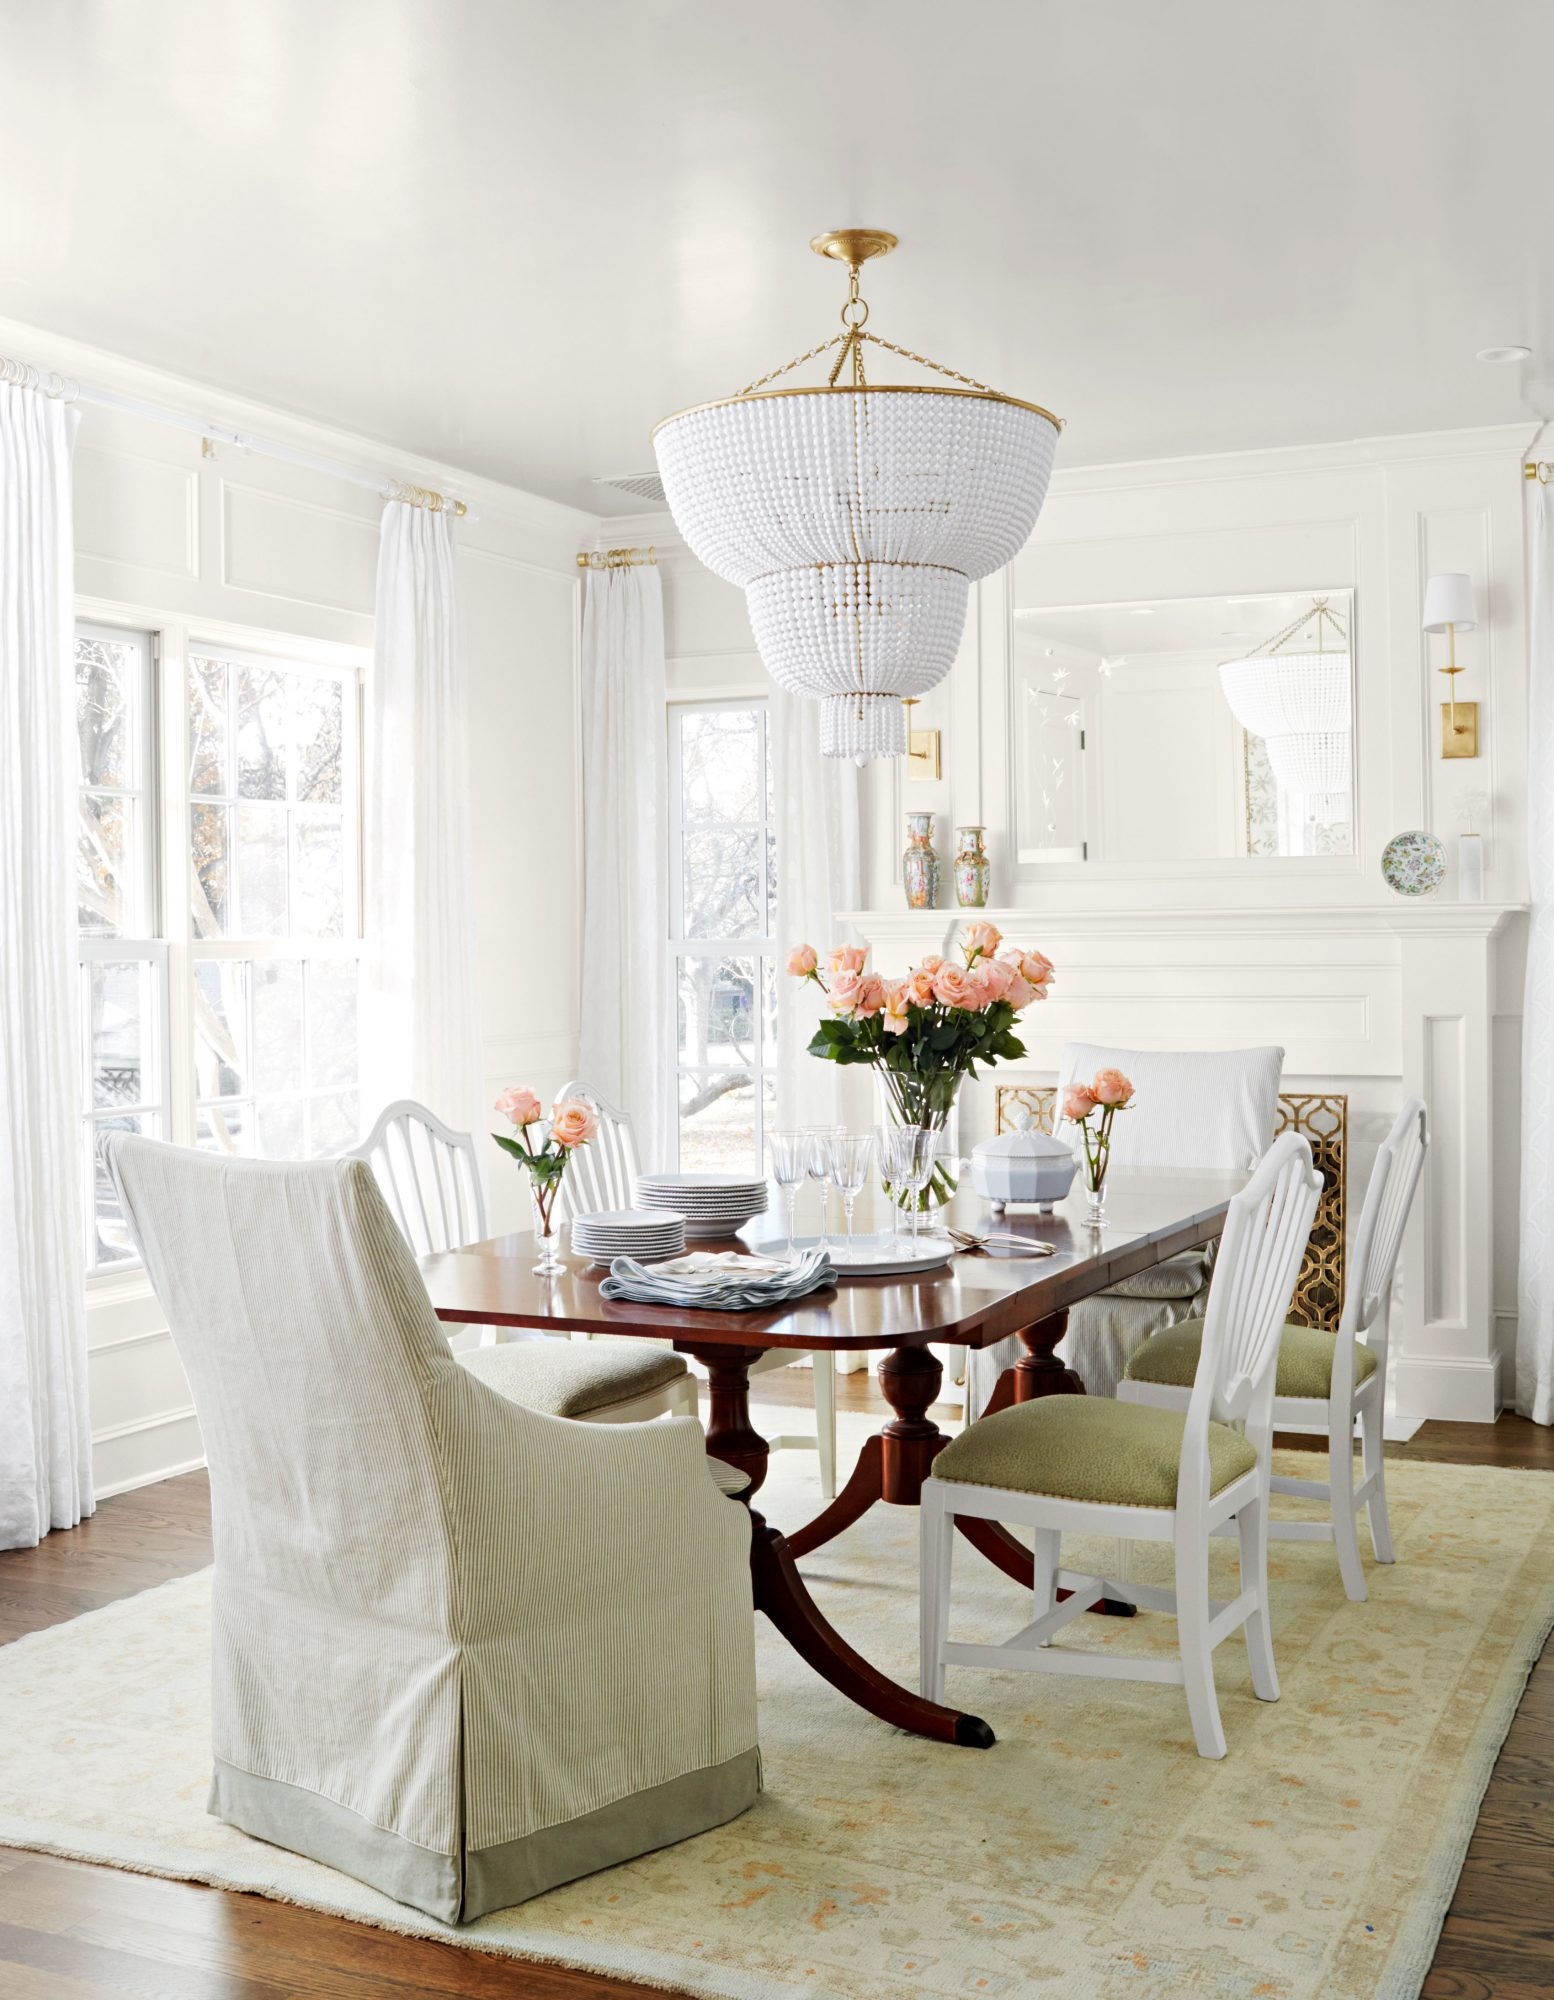 Formal dining room with white walls.